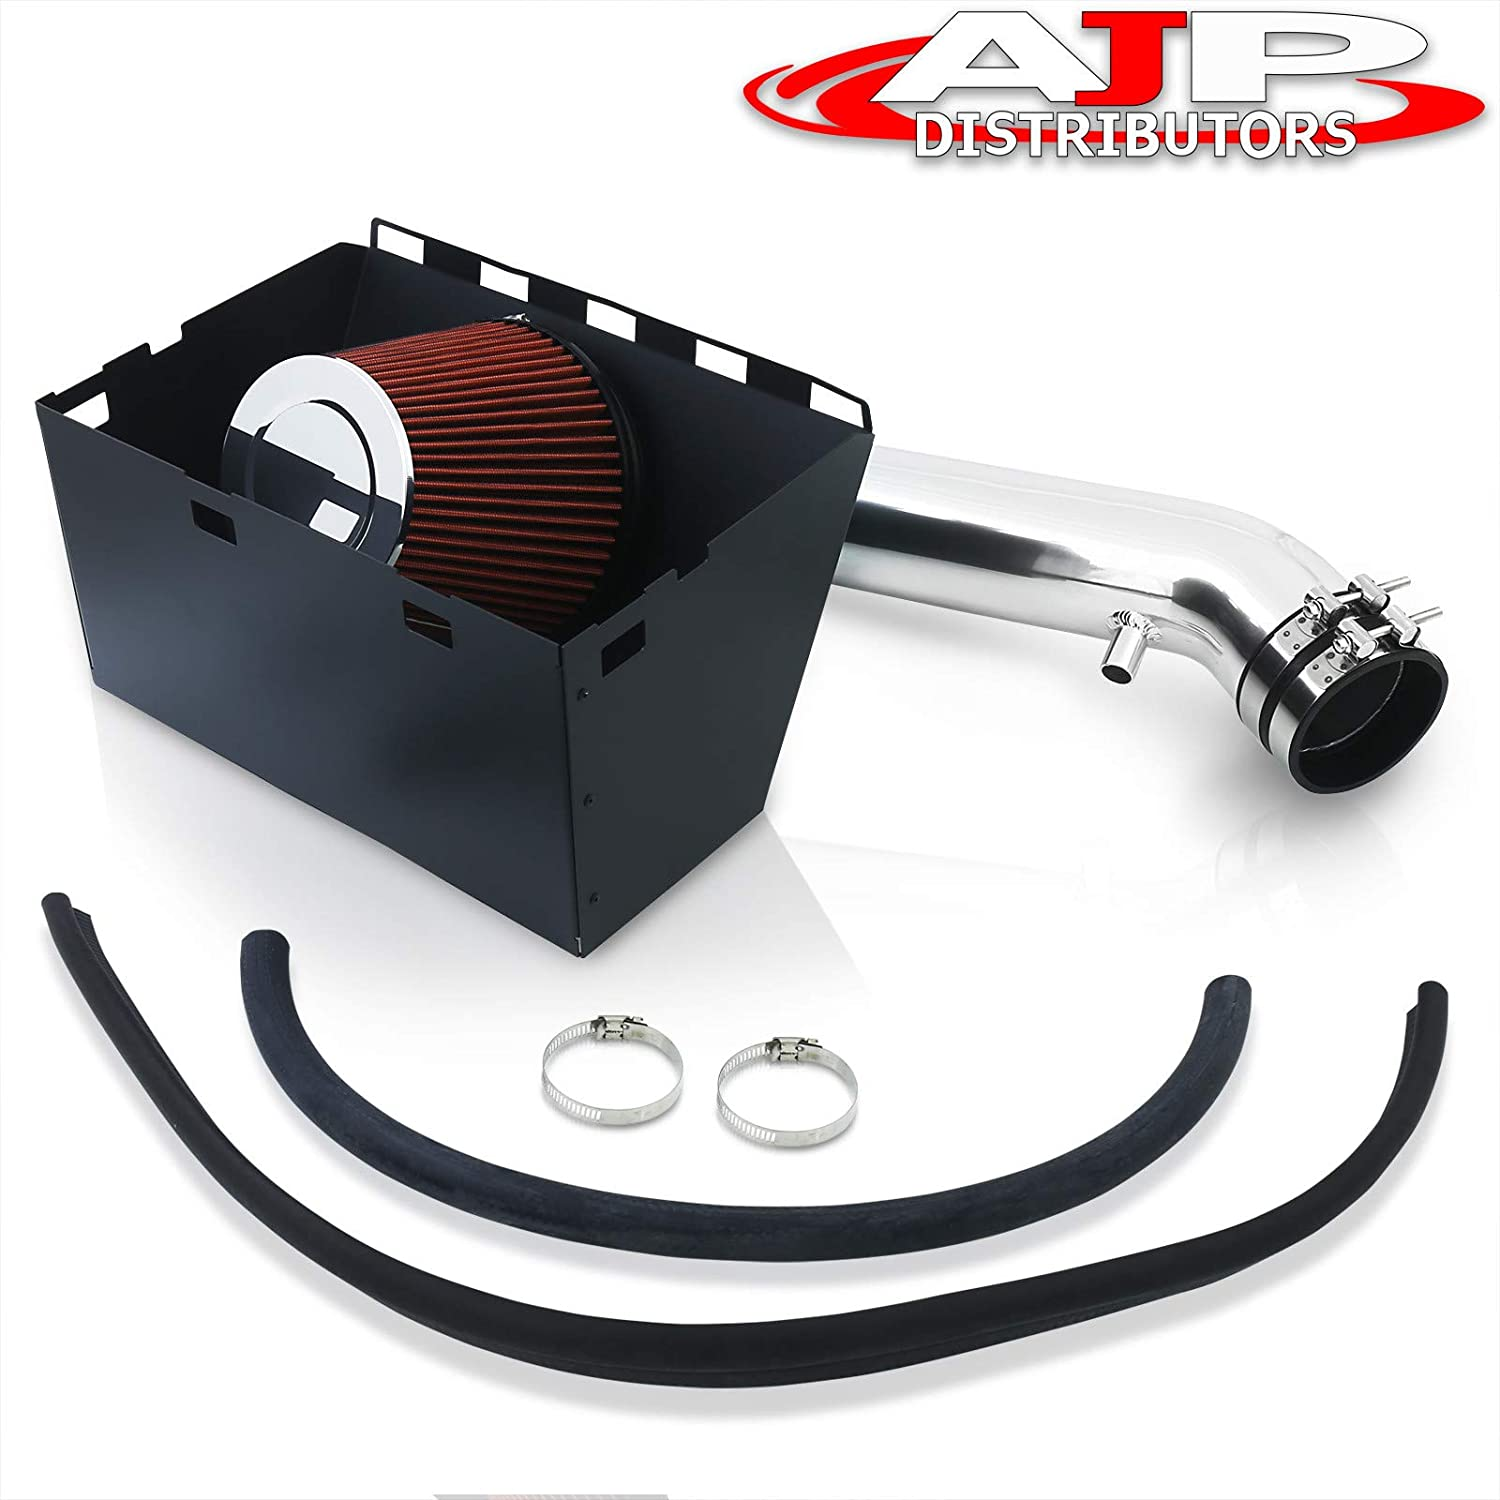 For Dodge Ram 1500 2500 3500 5.7L V8 High Flow Induction Air Intake System Heat Shield Chrome Piping Kit